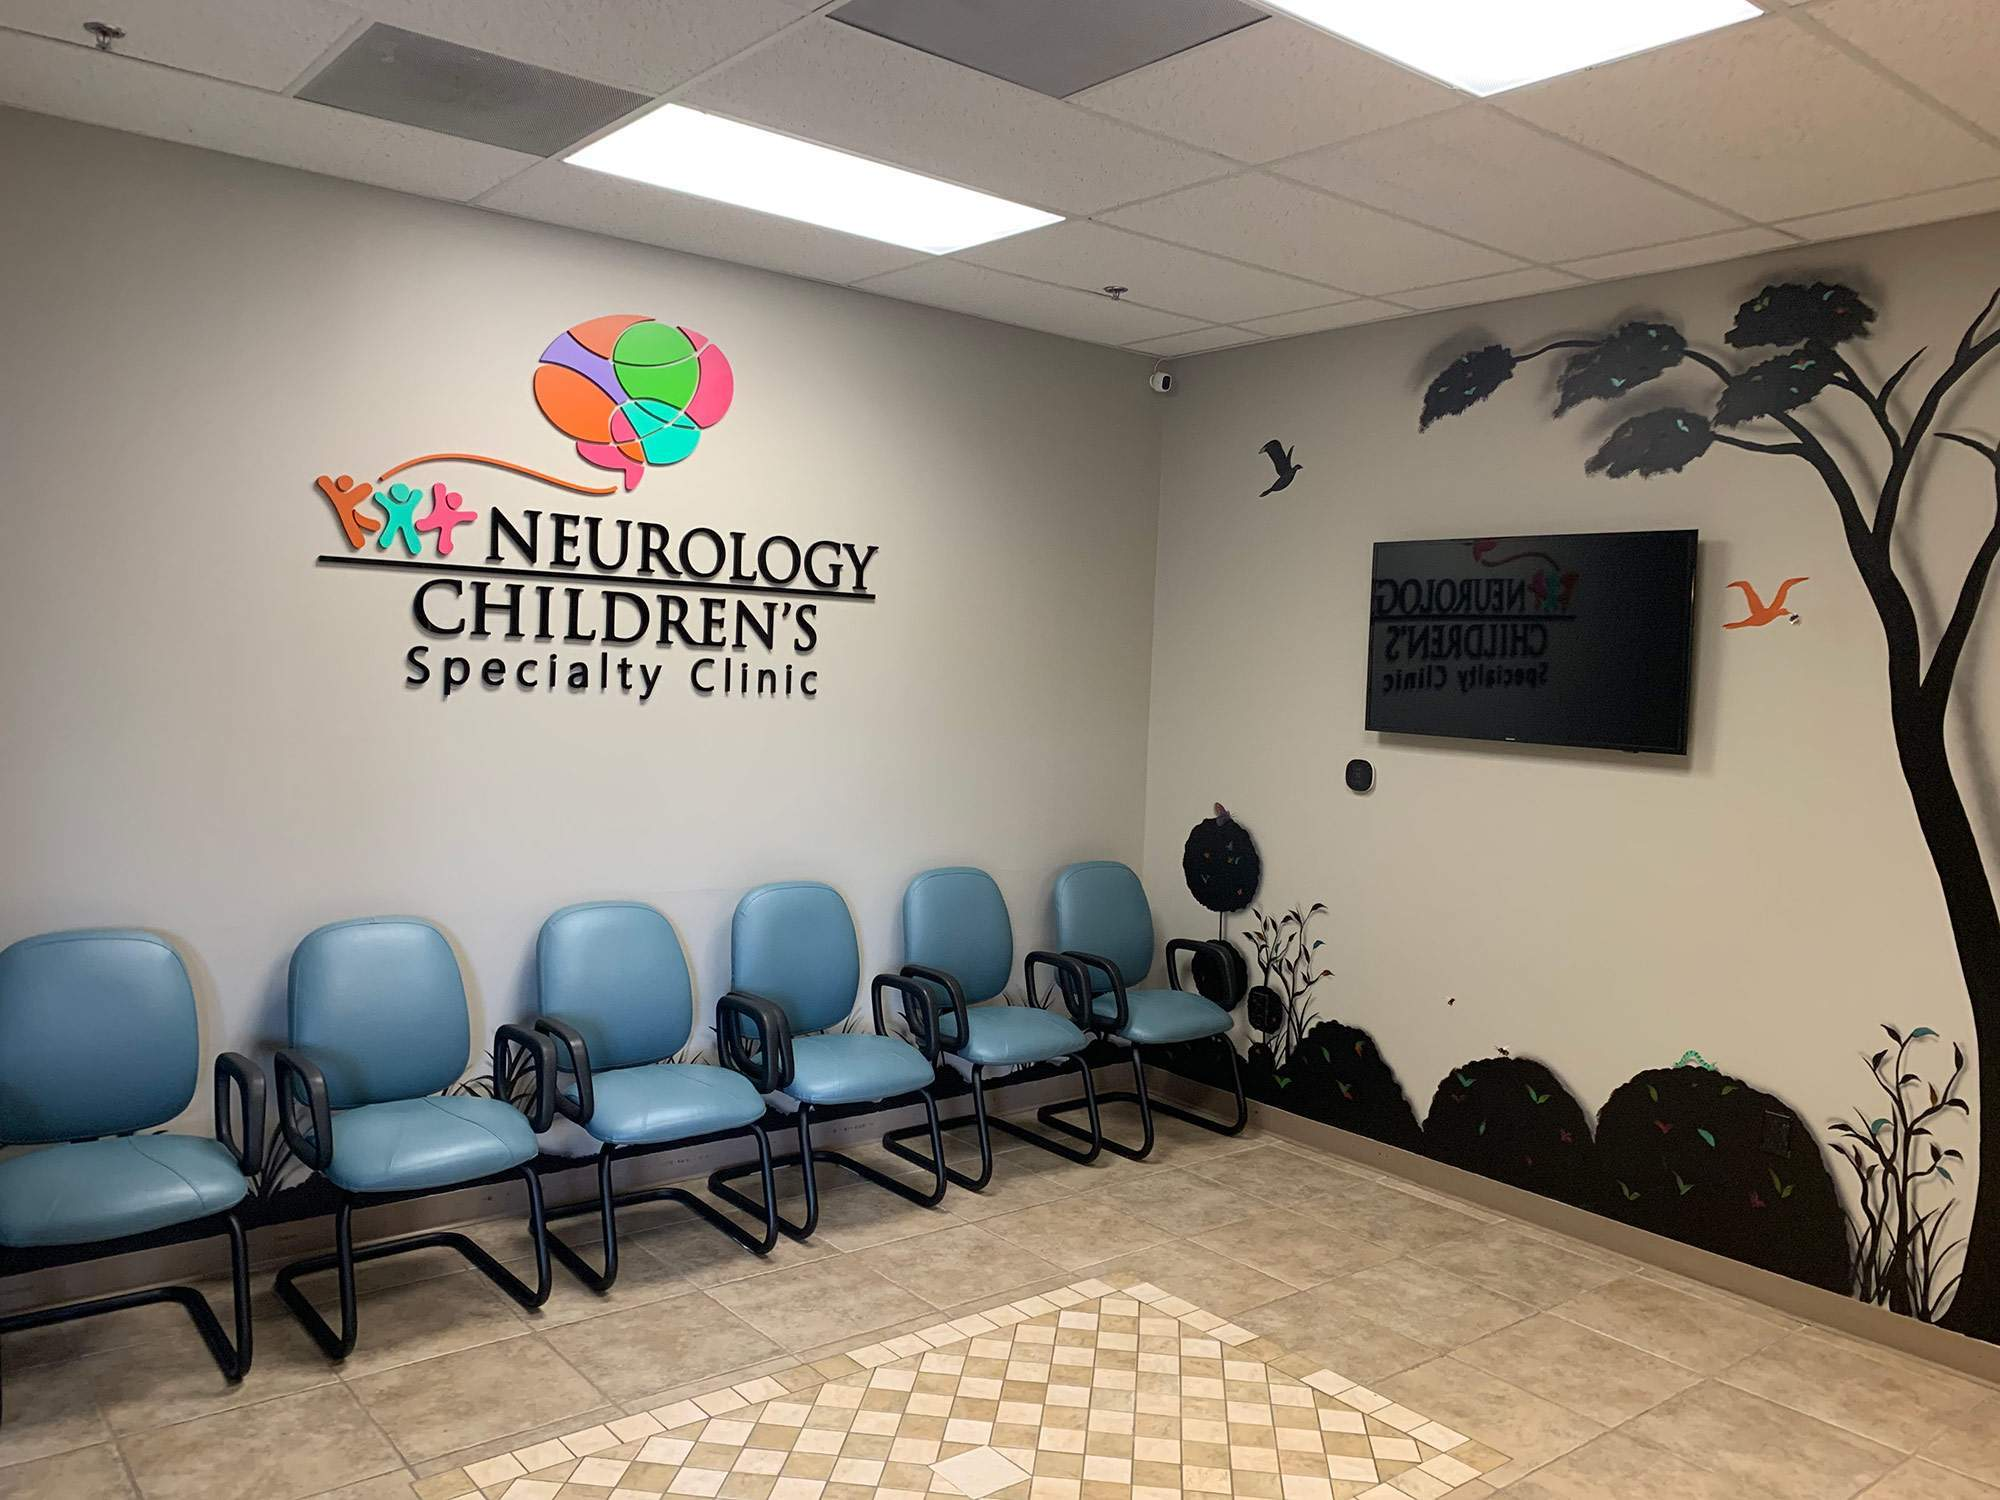 Neurology Children's Specialty Clinic Inside